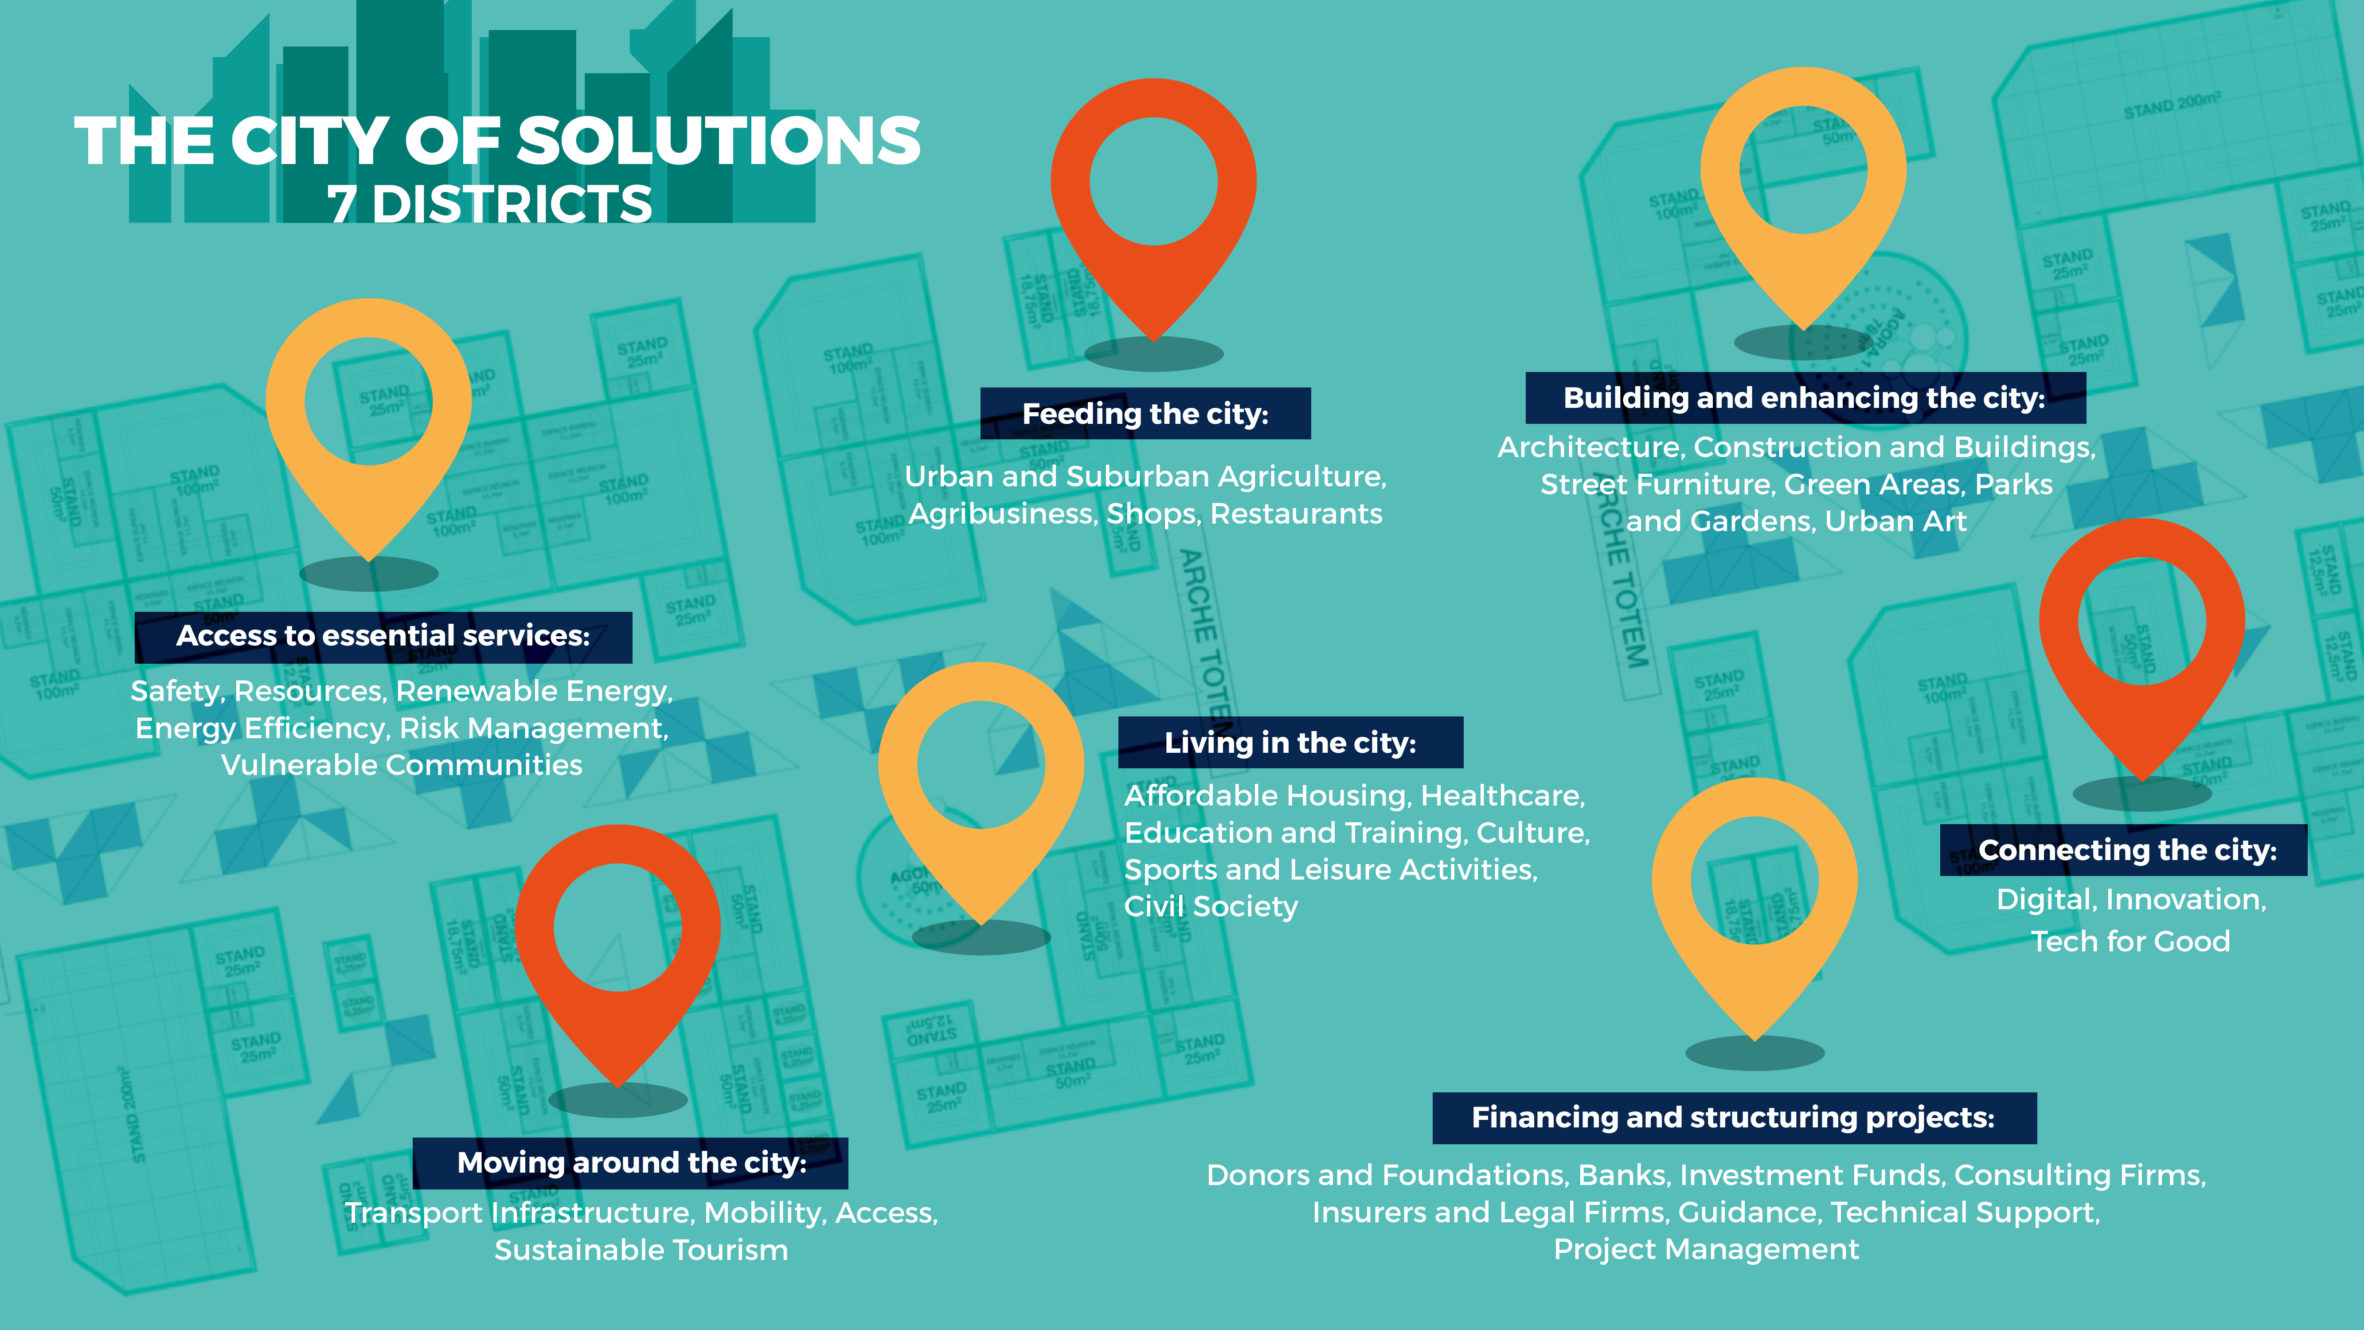 The City of Solutions (credits: Digital Africa)